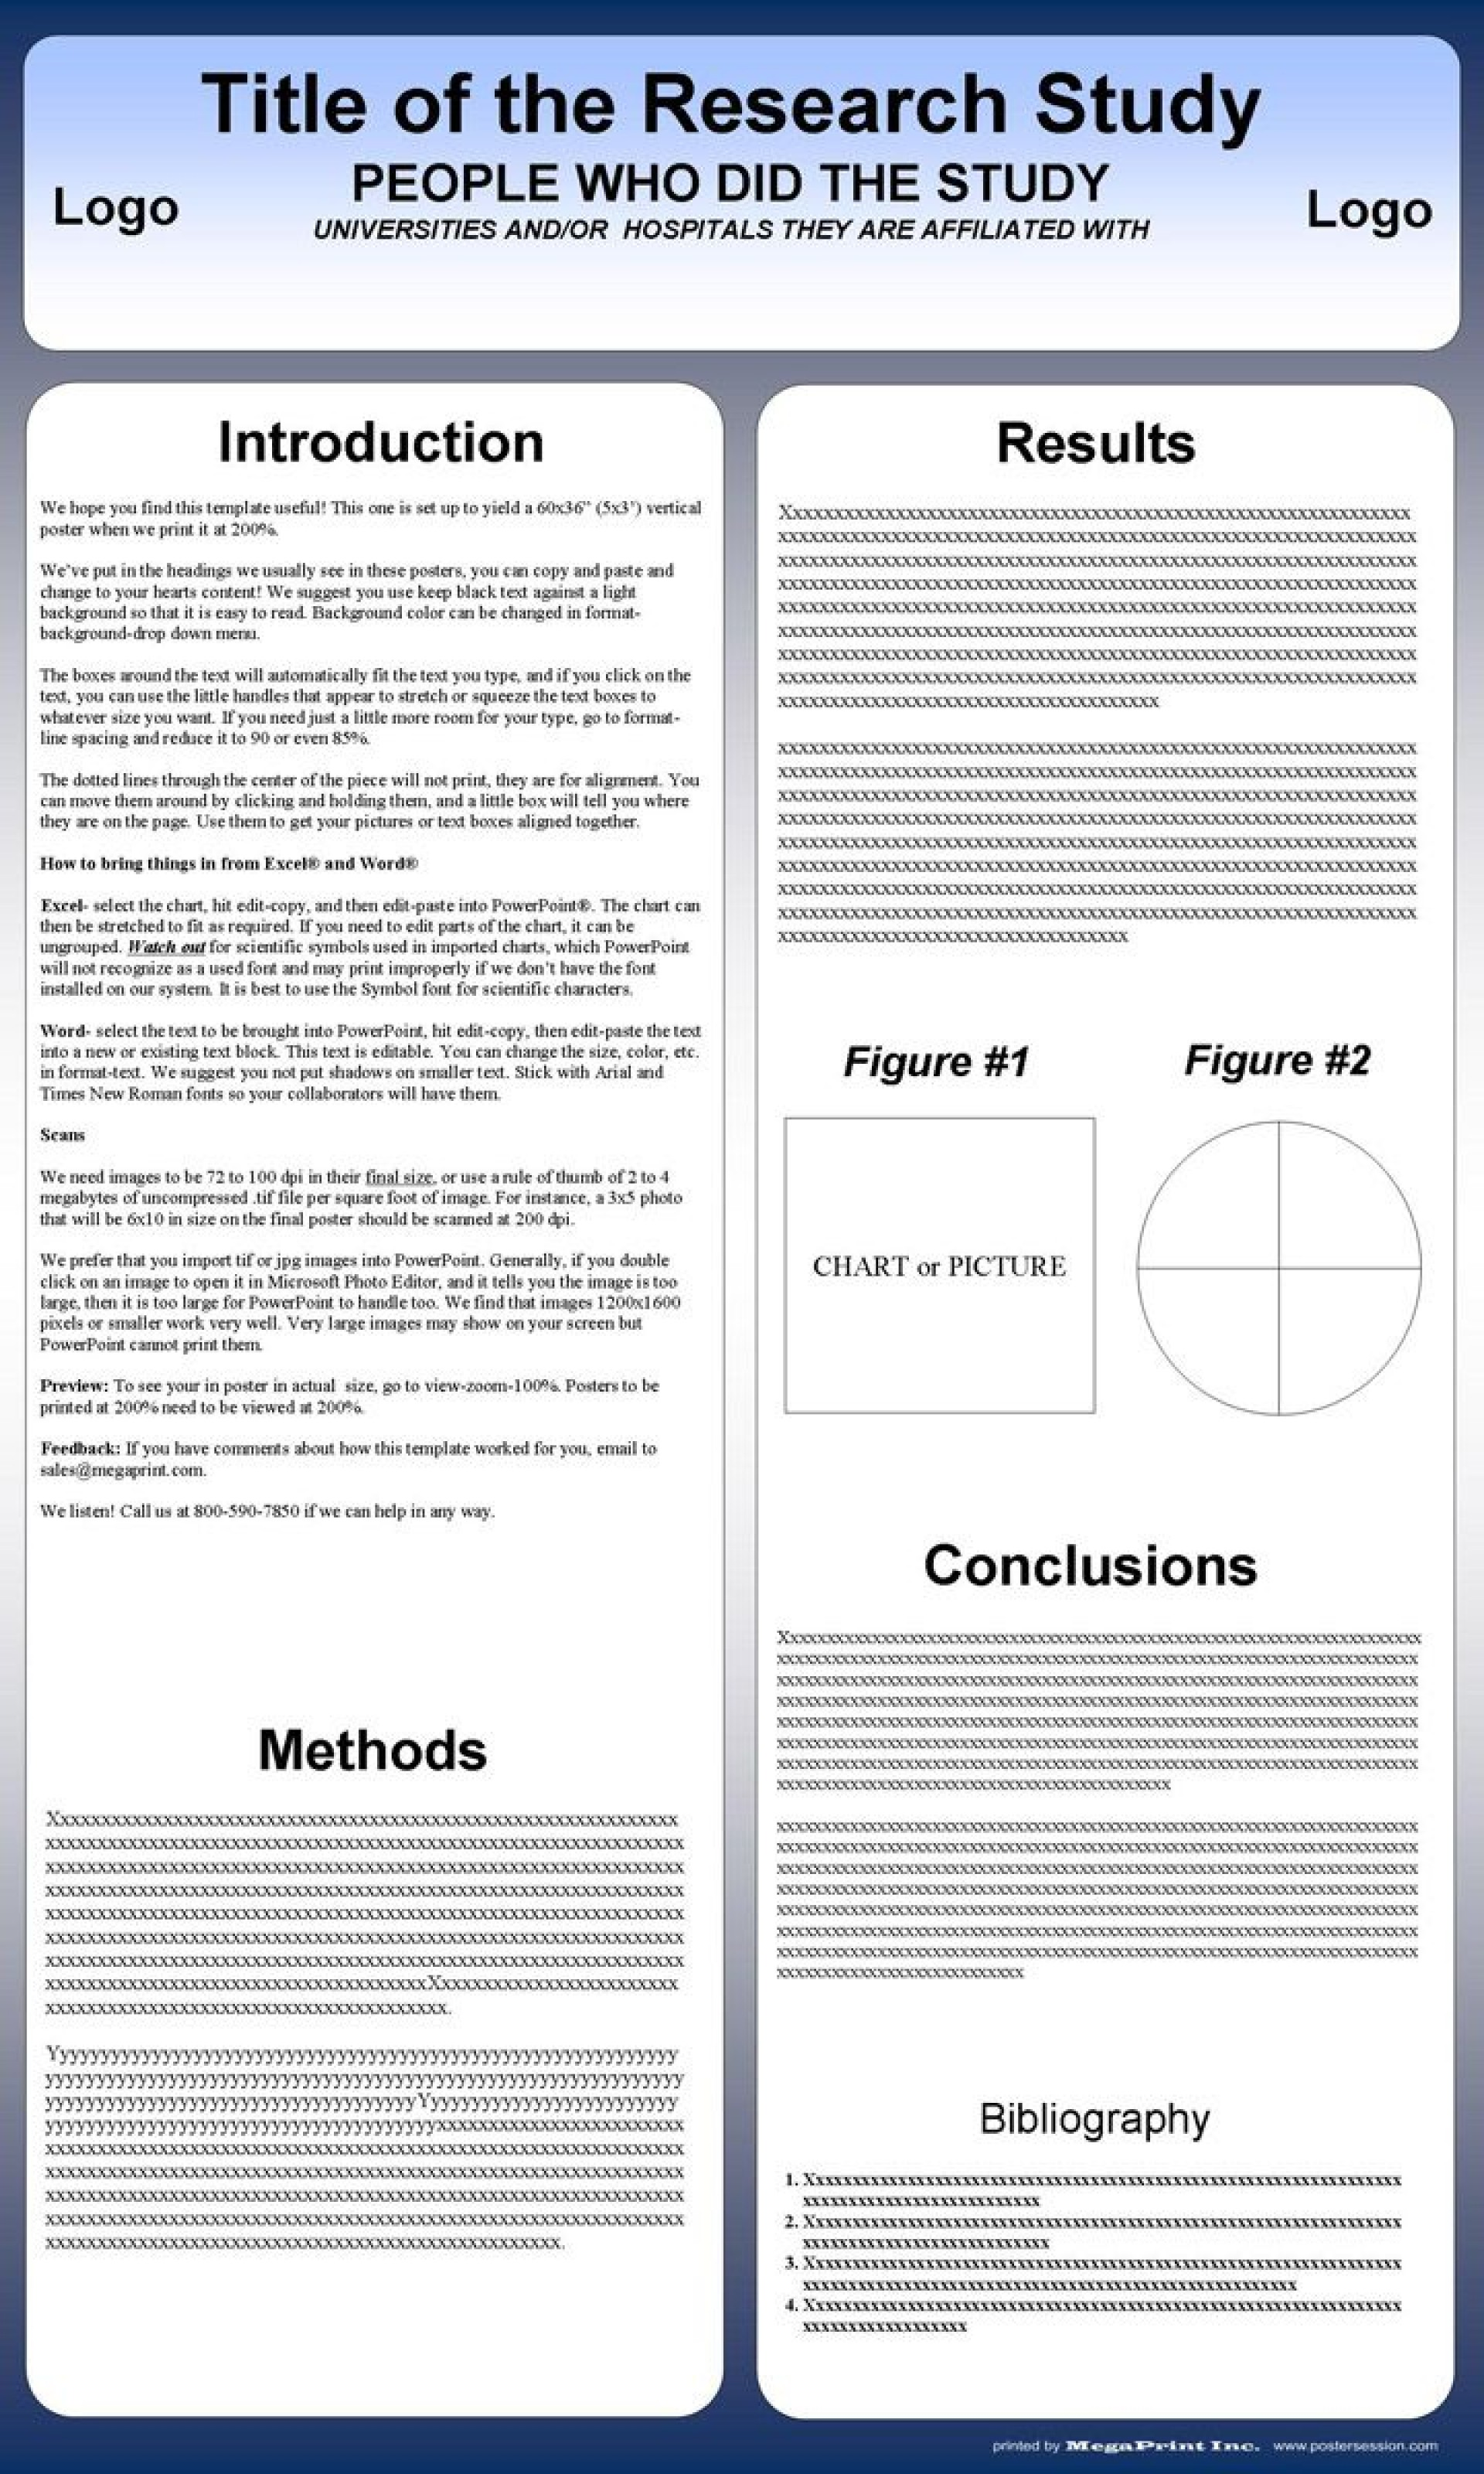 001 Archaicawful Scientific Poster Template Free Powerpoint Idea  Research Presentation1920